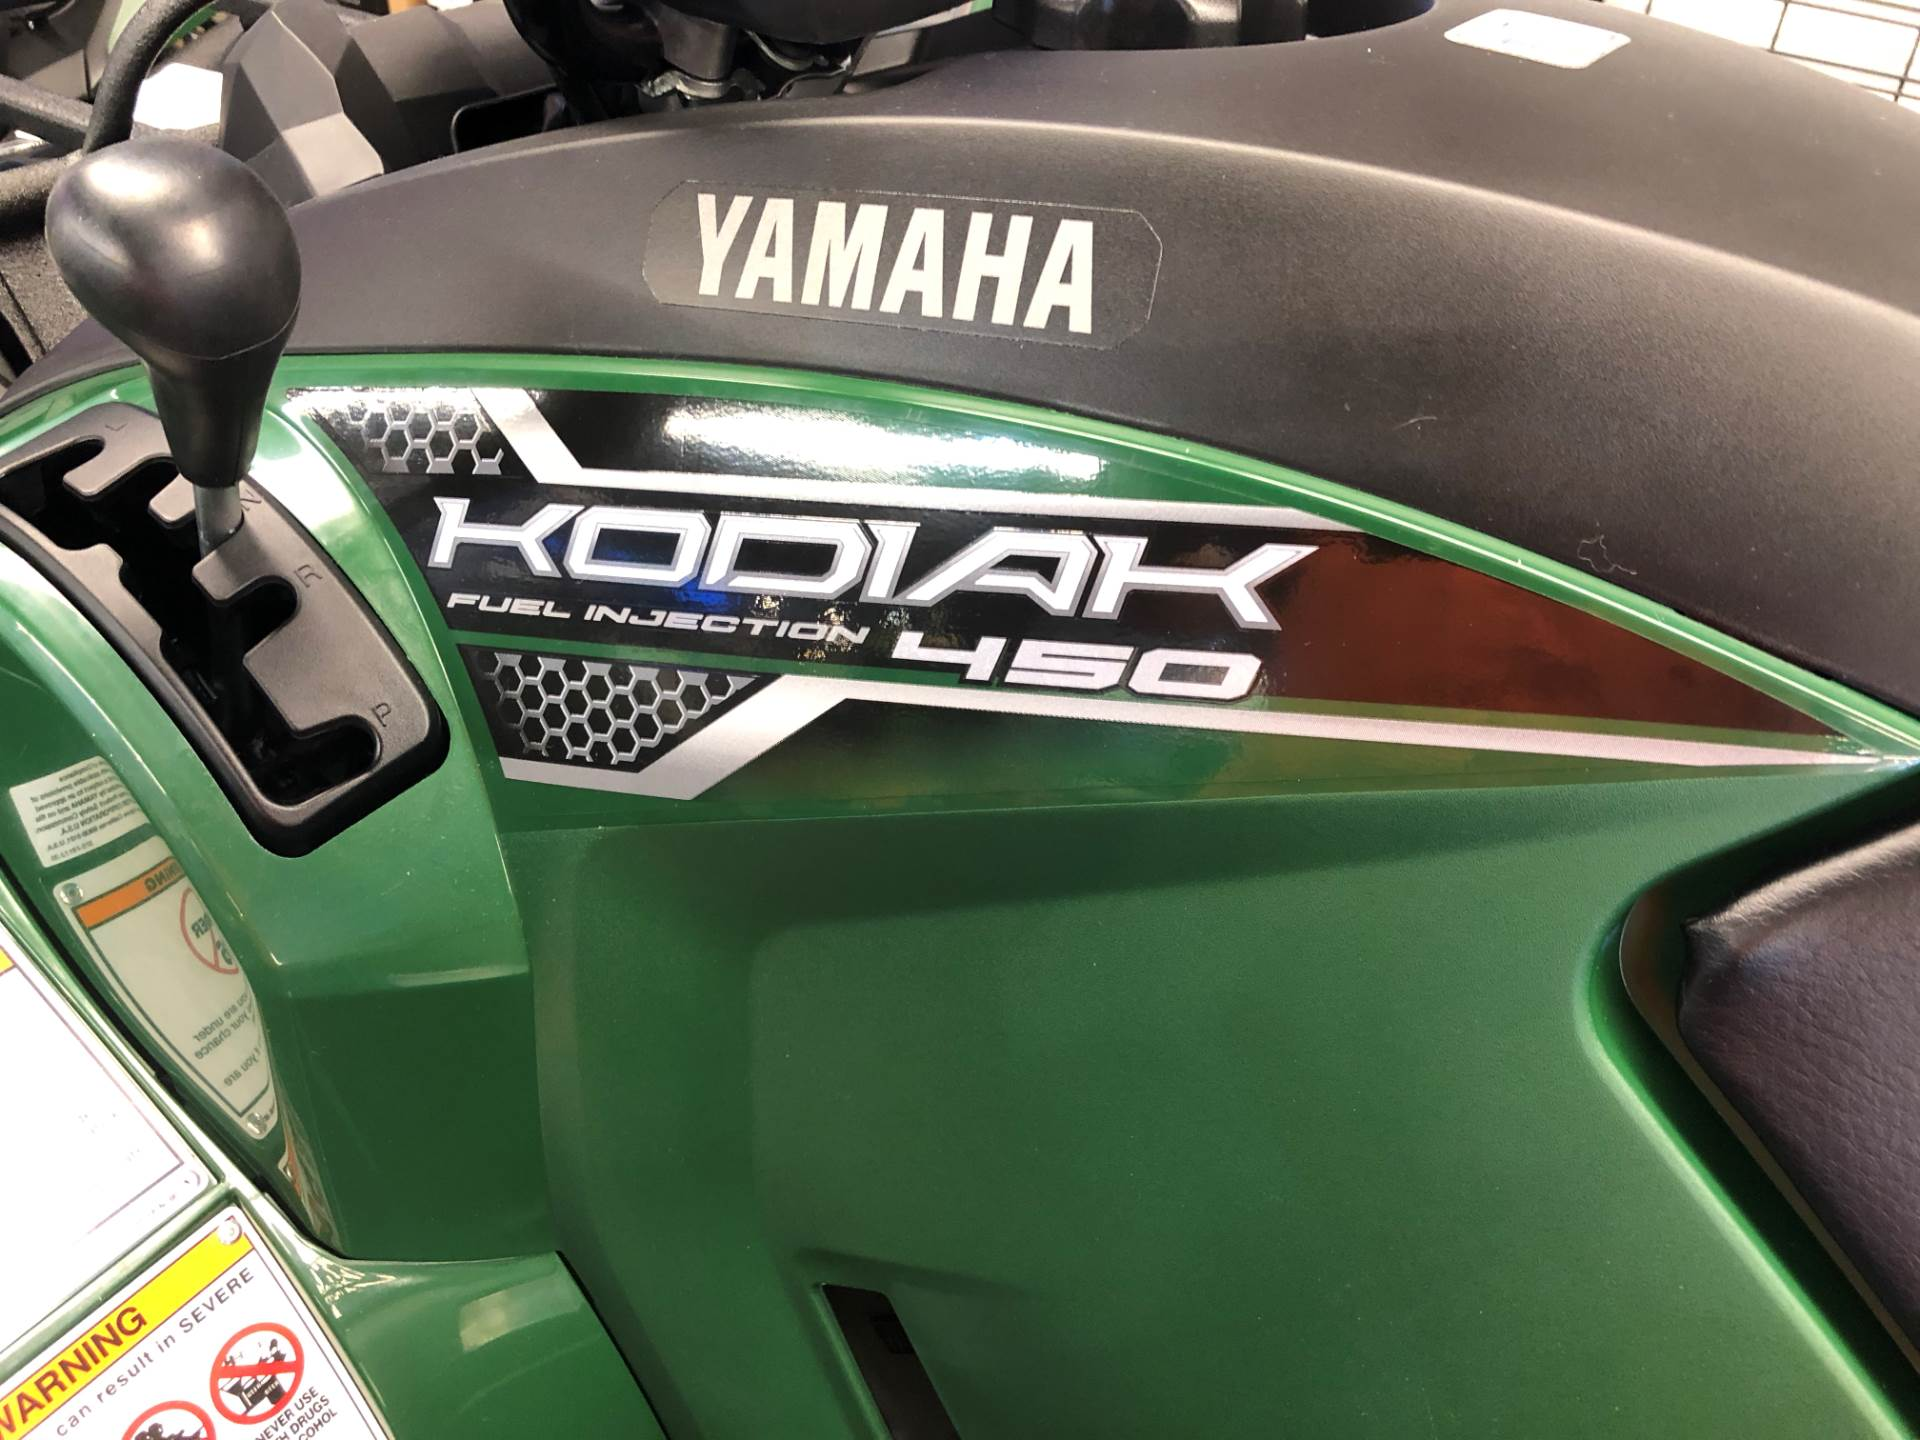 2018 Yamaha Kodiak 450 in Hobart, Indiana